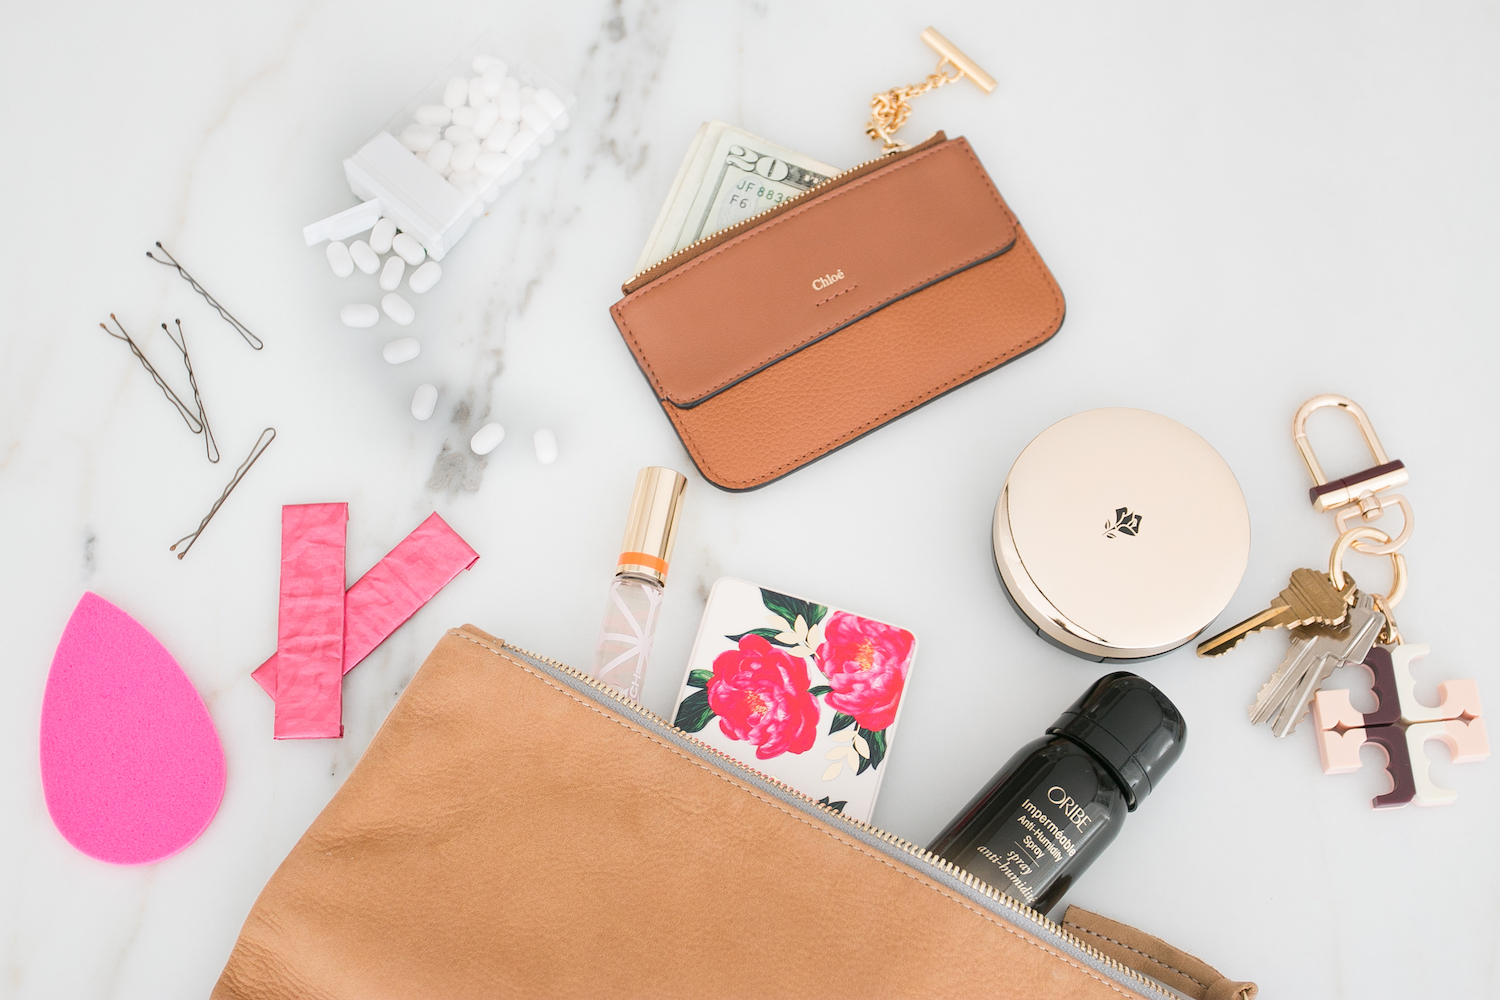 Lancome Chloe Clutch Essentials Make up Oribe Monika Hibbs